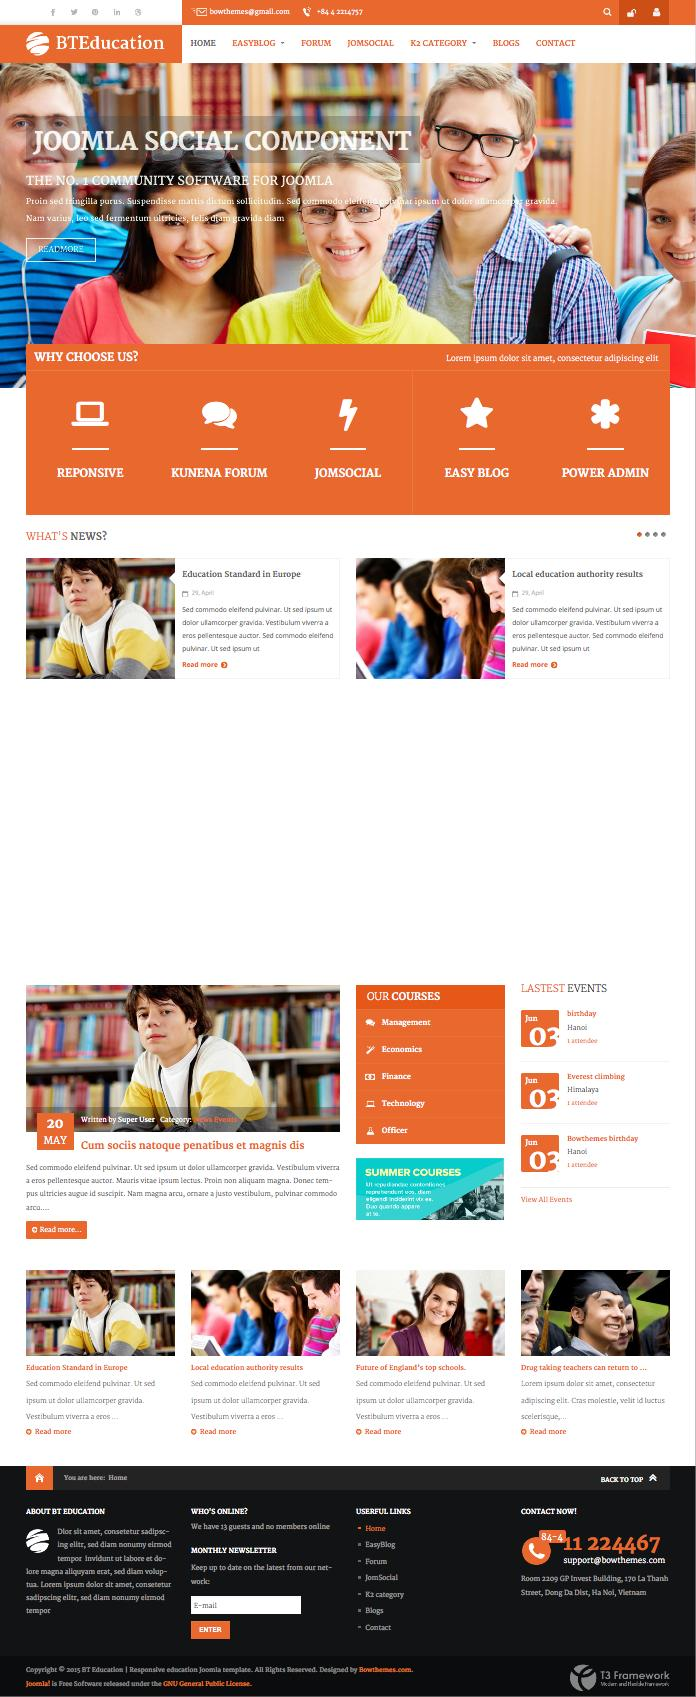 BT Education Joomla Social Networks Template